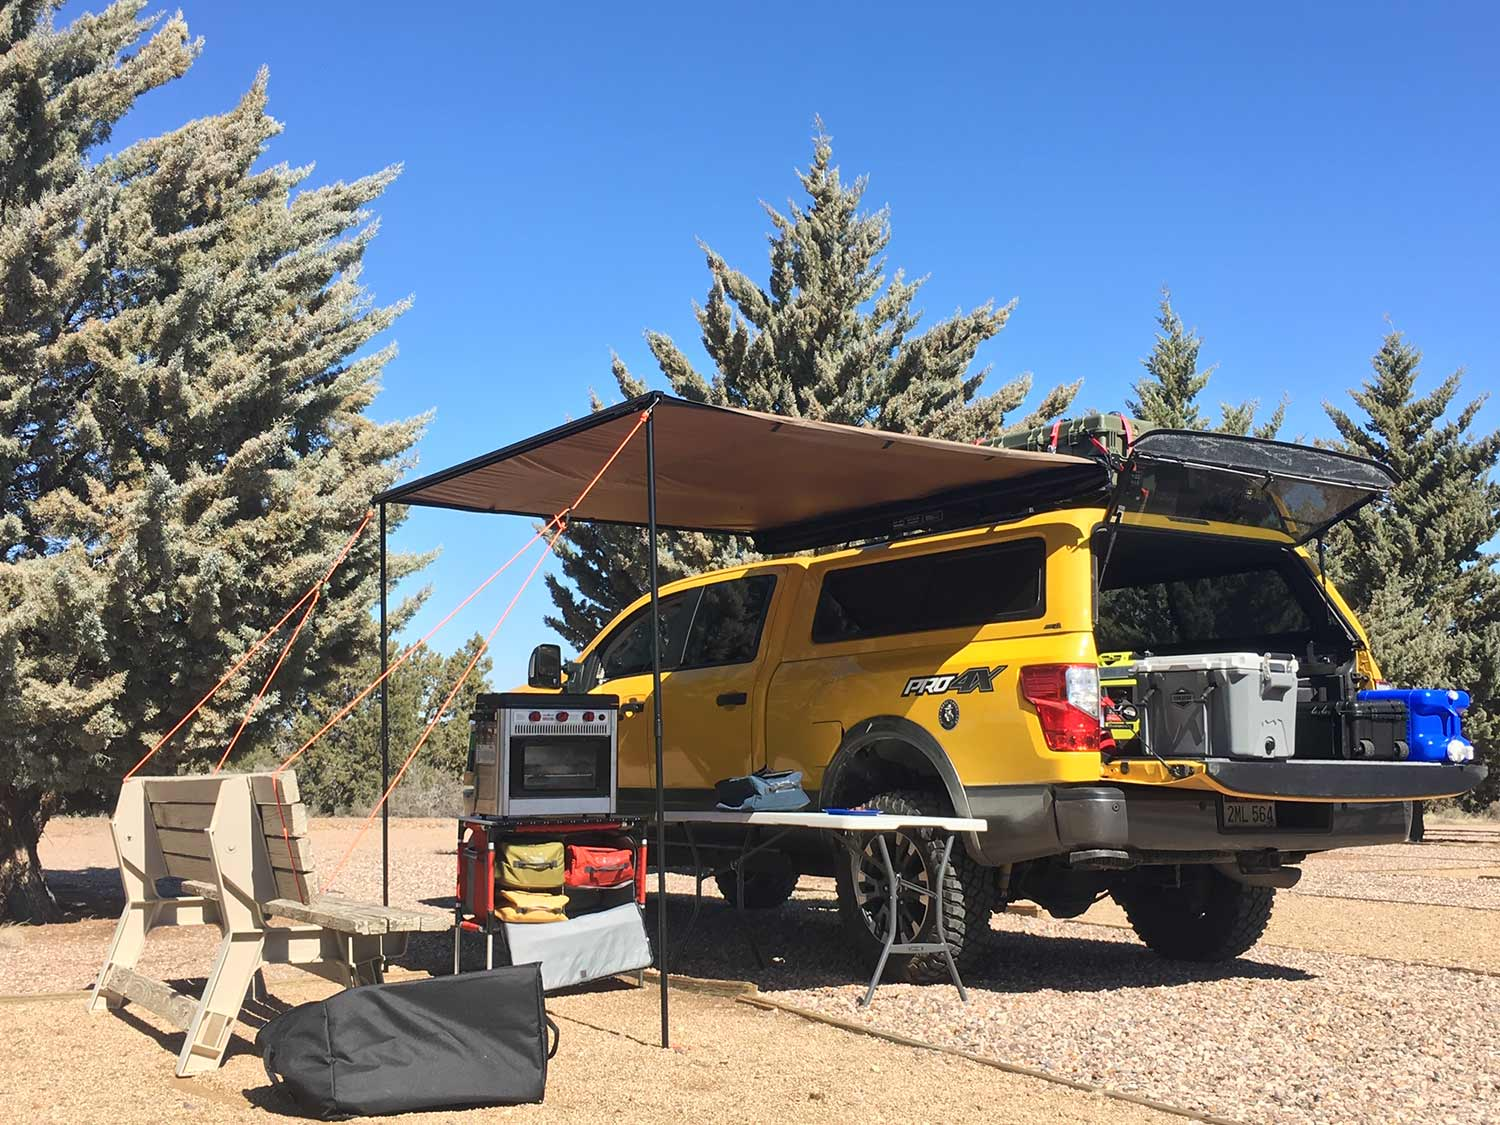 A truck turned into a mobile hunting camp.